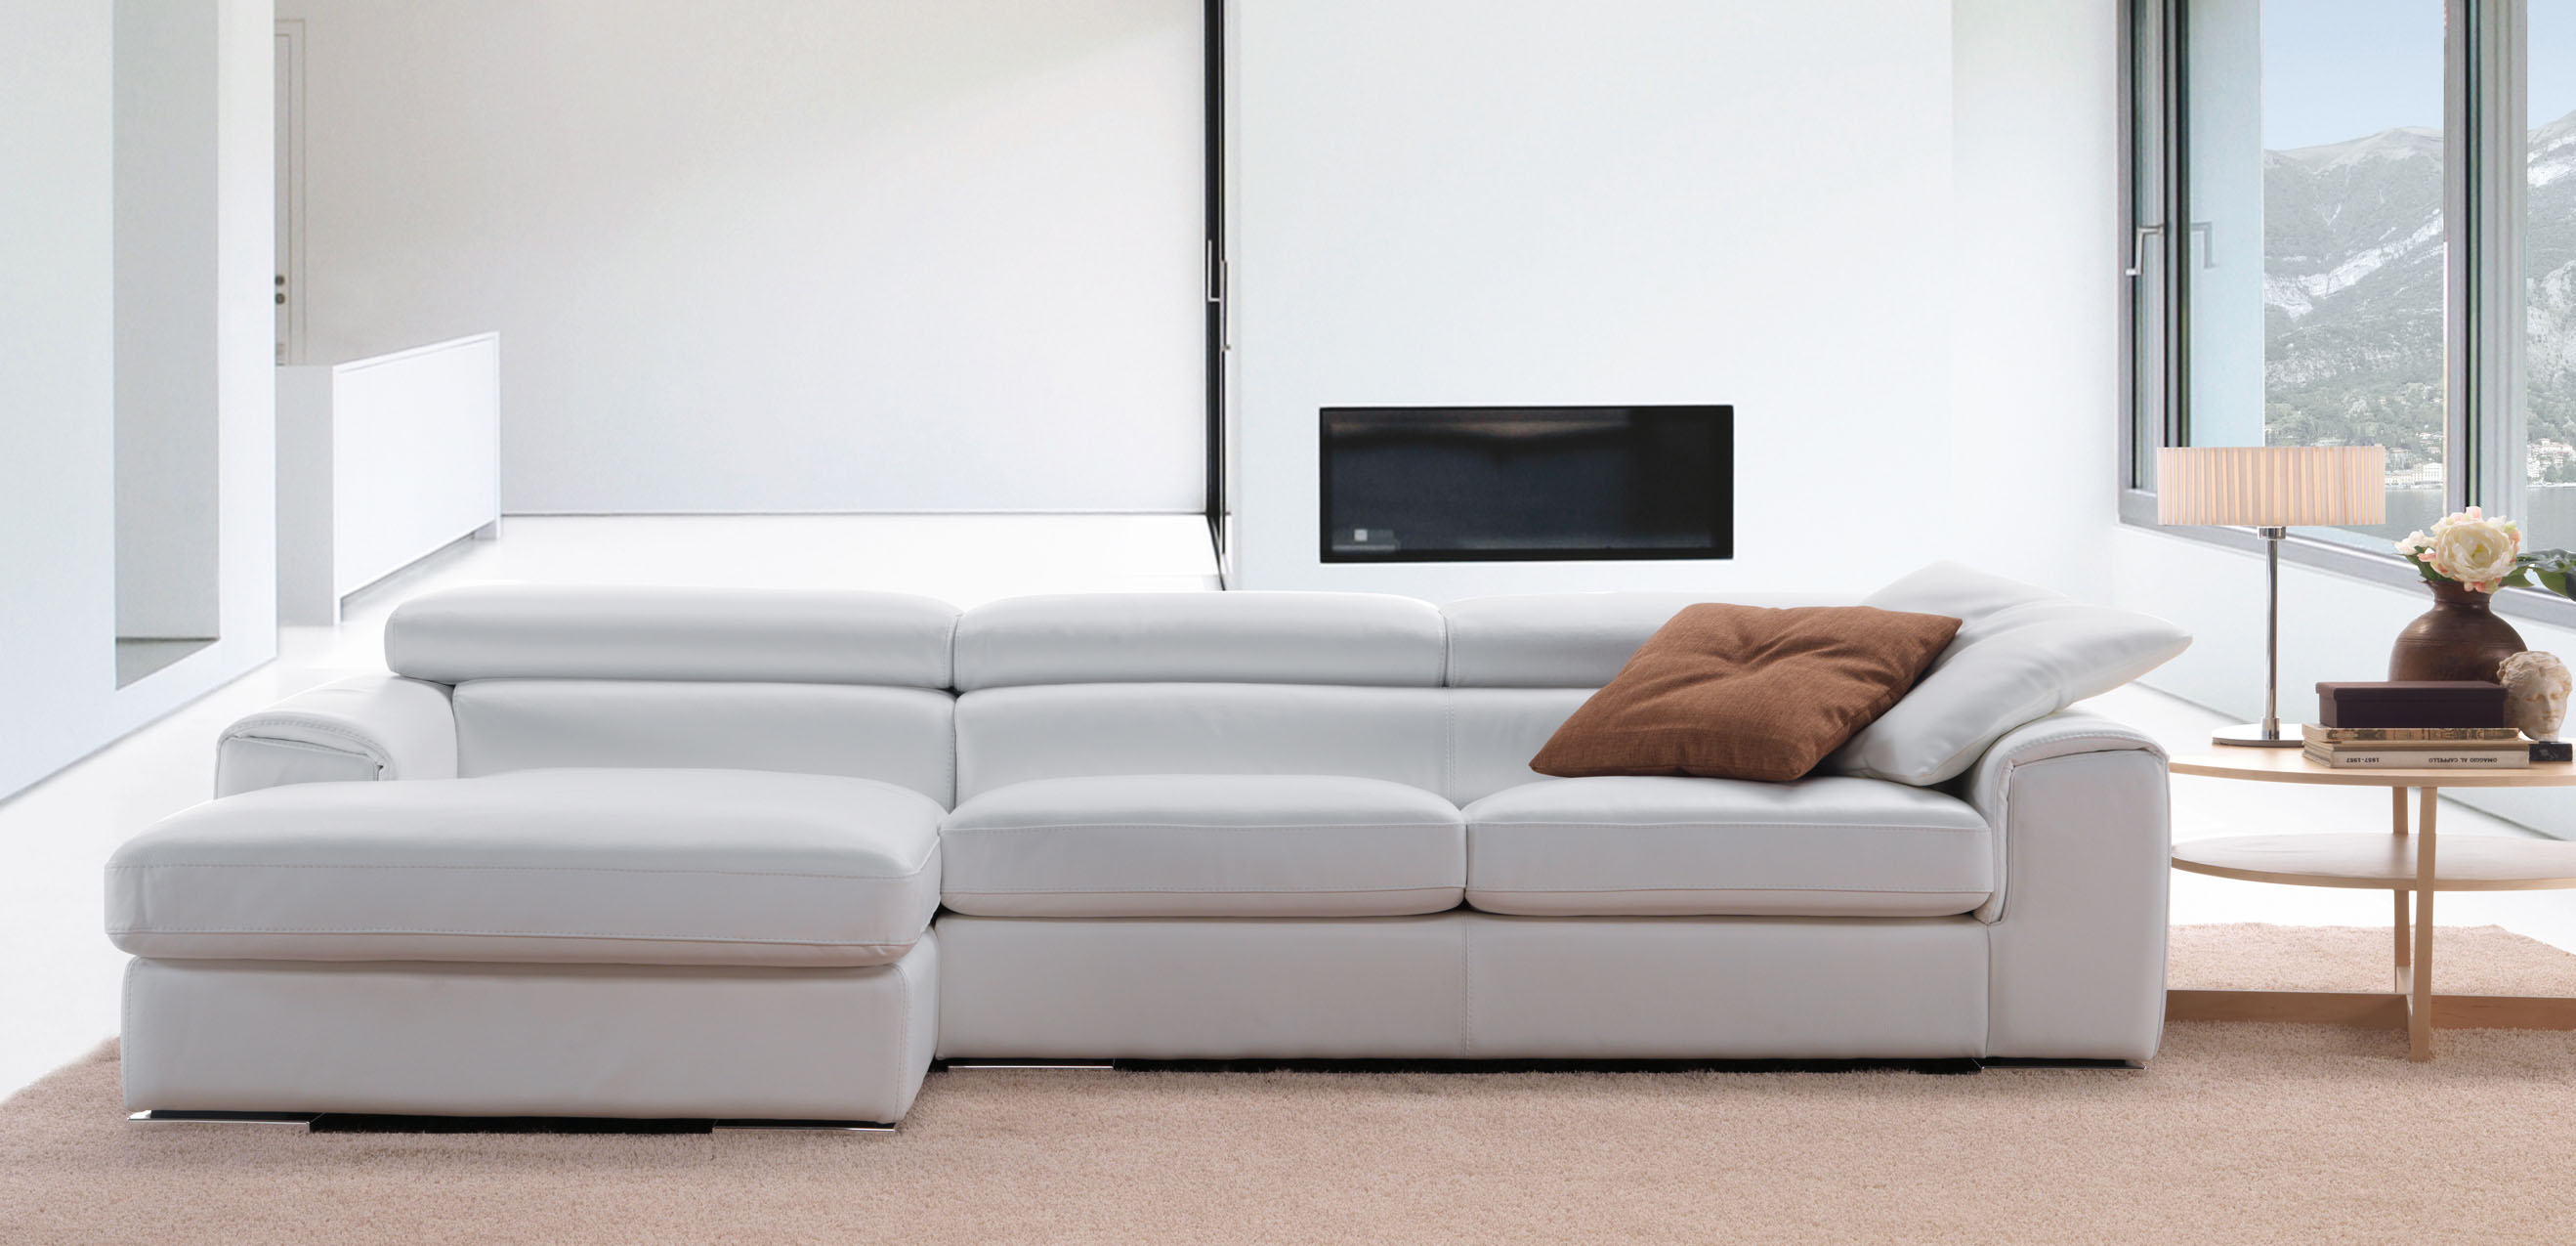 Sophisticated Full Italian Leather L shape Furniture with Pillows